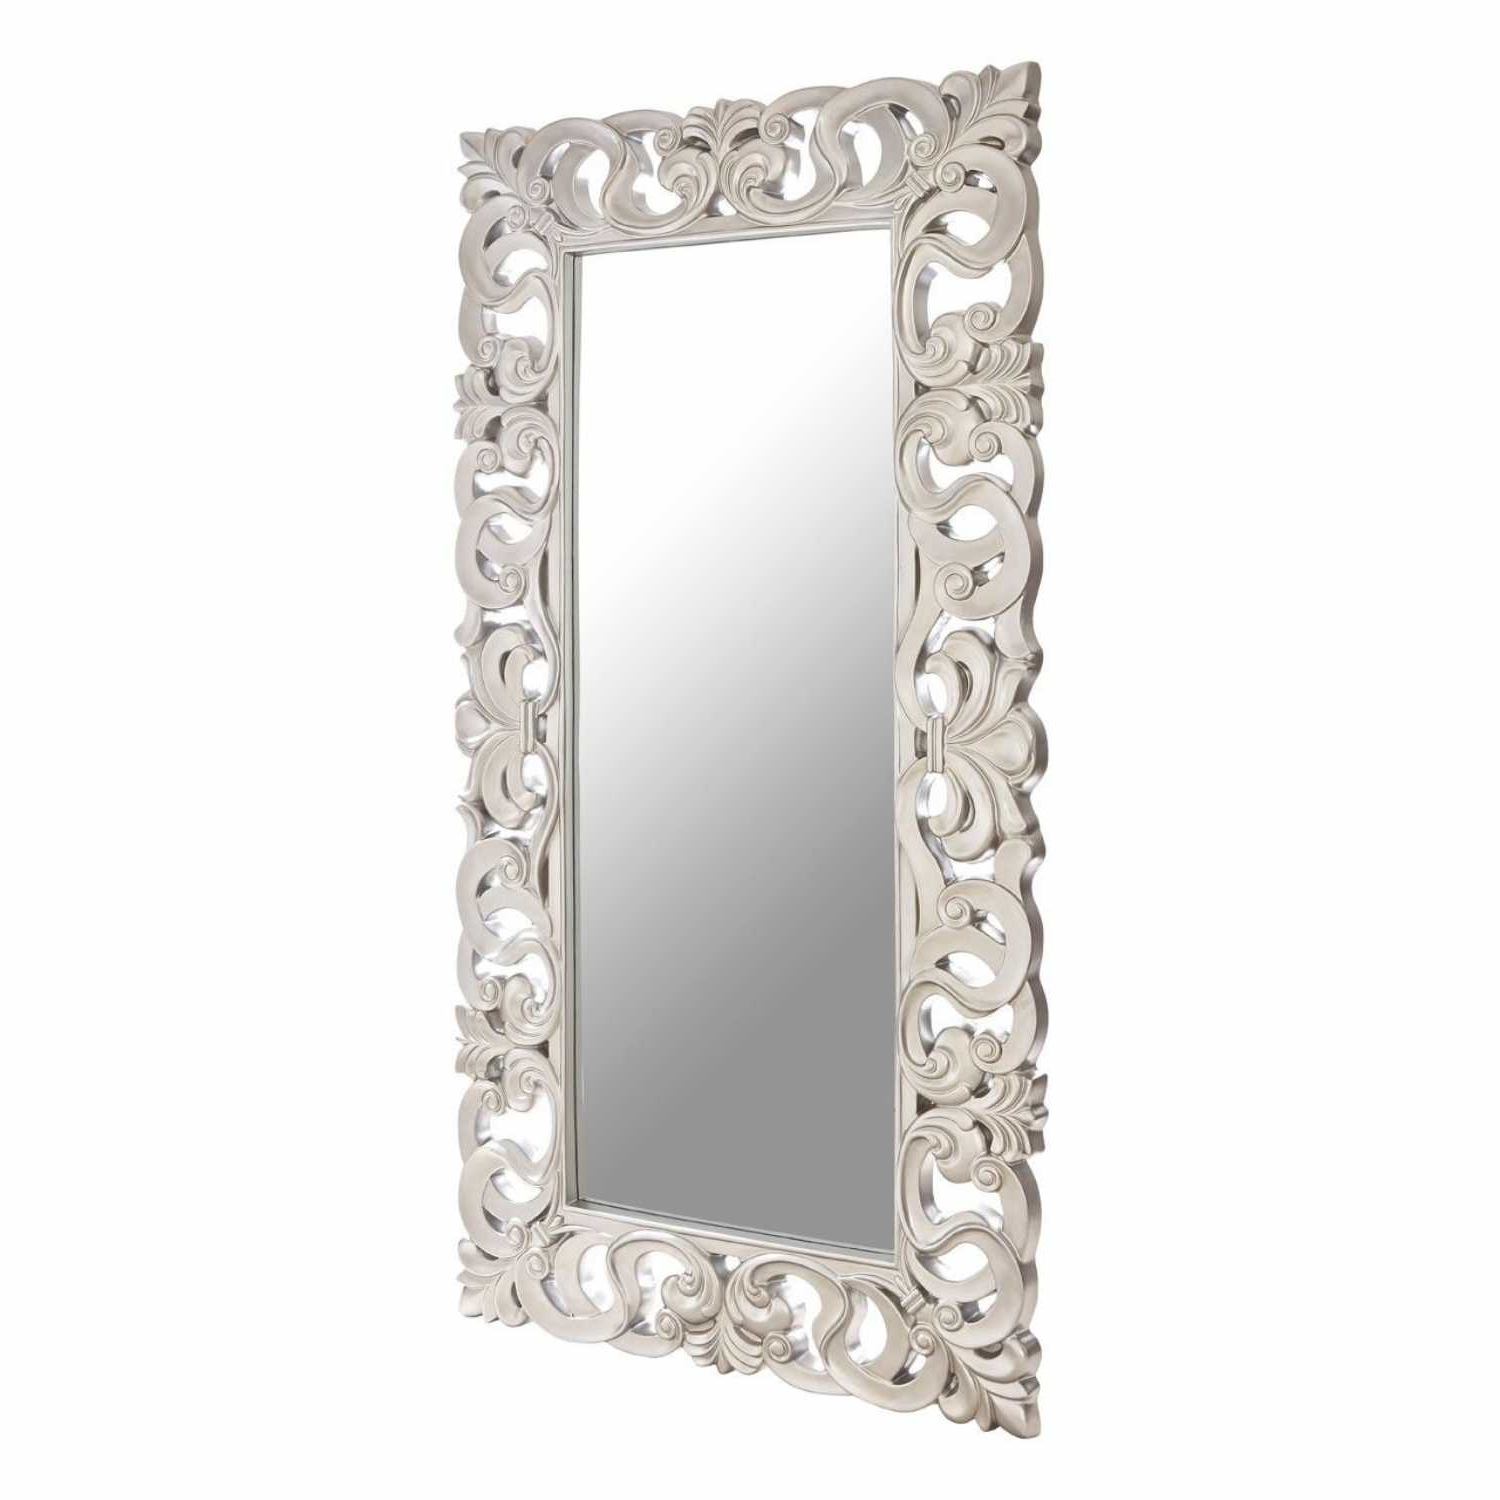 Most Recent Large Decorative Wall Mirrors For Large Modern Silver Finish Ornate Rectangular Decorative Wall Mirror (View 4 of 20)